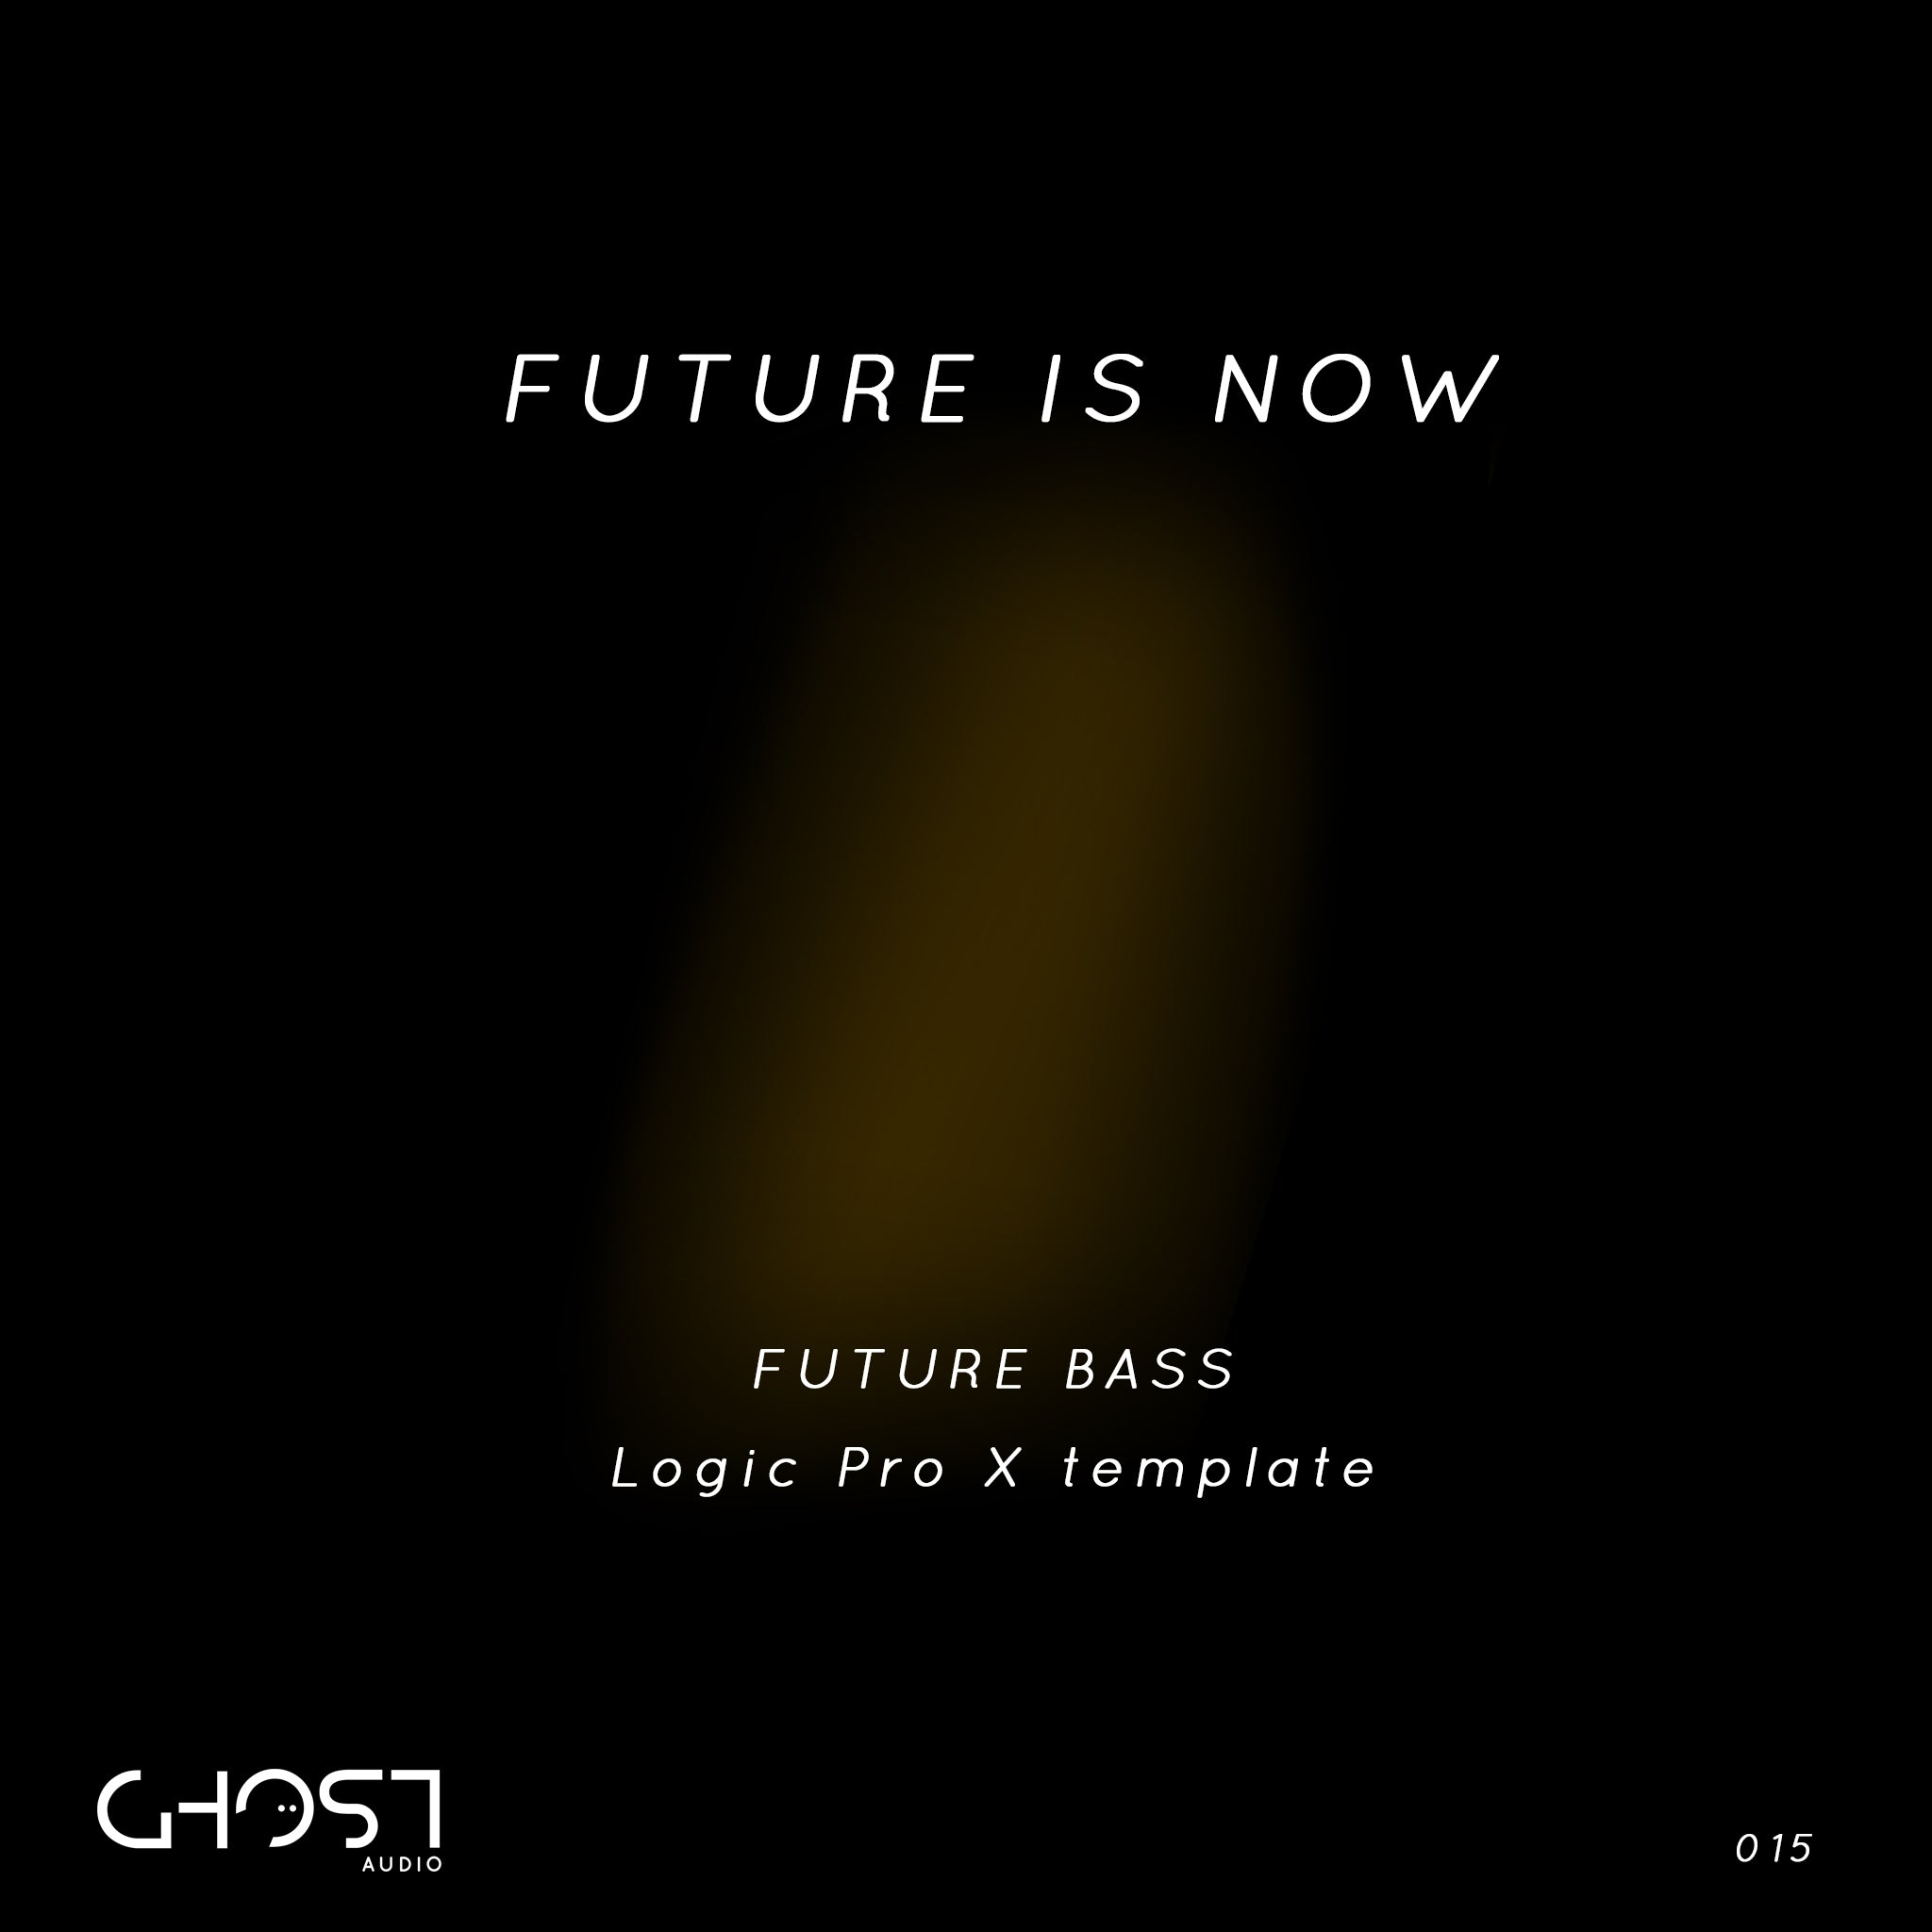 FUTURE IS NOW - FUTURE BASS ( LOGIC PRO X TEMPLATE )